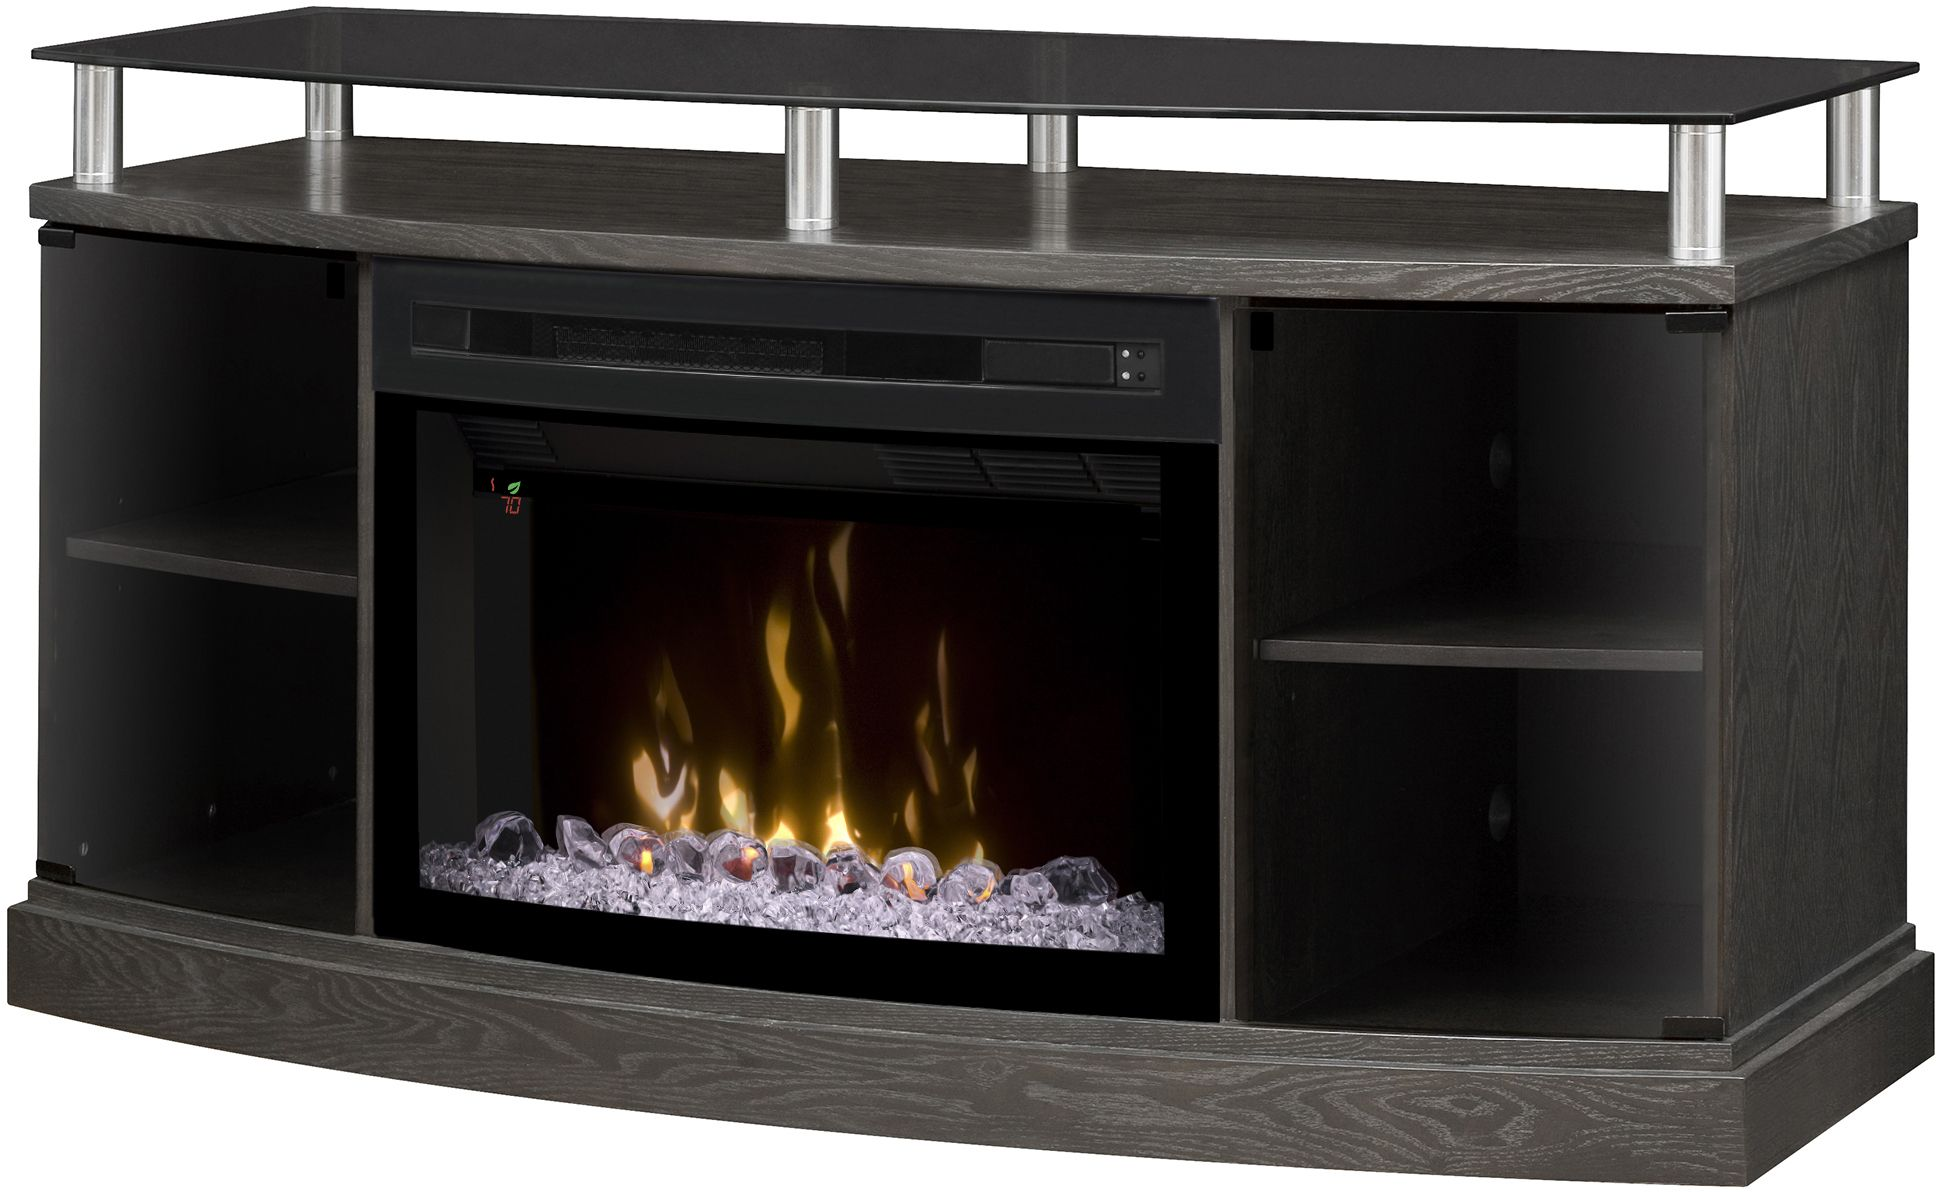 Curved Electric Fireplace Windham Silver Charcoal Media Console Electric Fireplace With Curved Glass Front